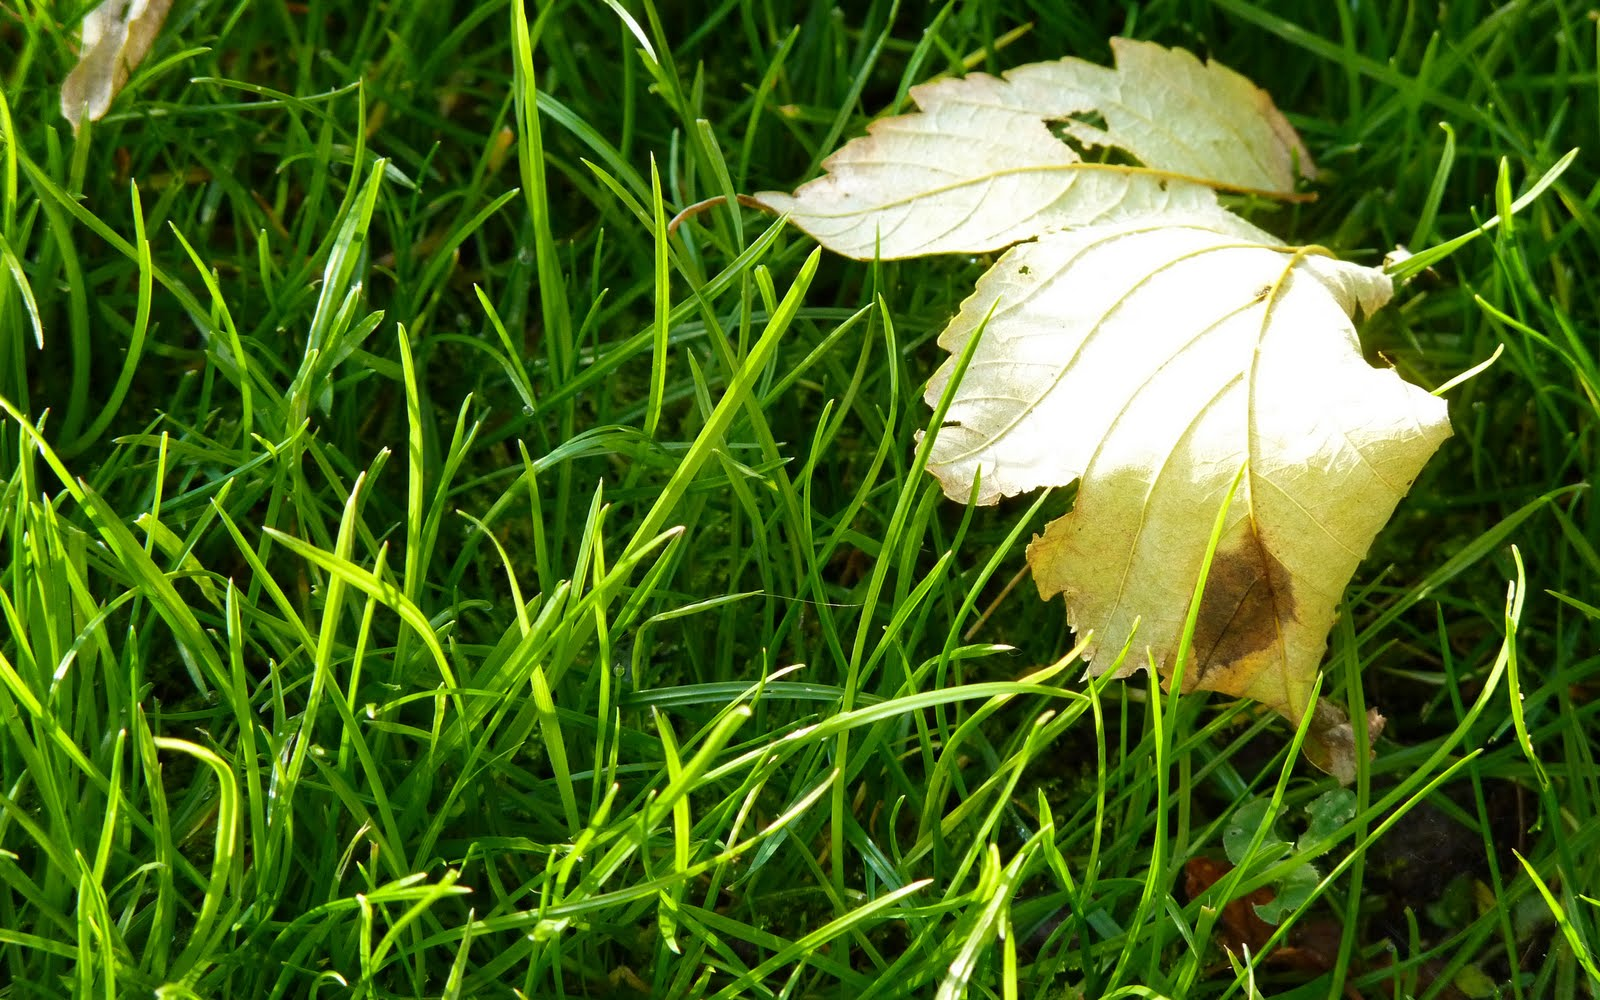 http://4.bp.blogspot.com/_2UbsSBz9ckE/S6qRN_kMMkI/AAAAAAAABEg/_QPSAEn8P14/s1600/Morning_Grass_HD_wallpaper.jpg